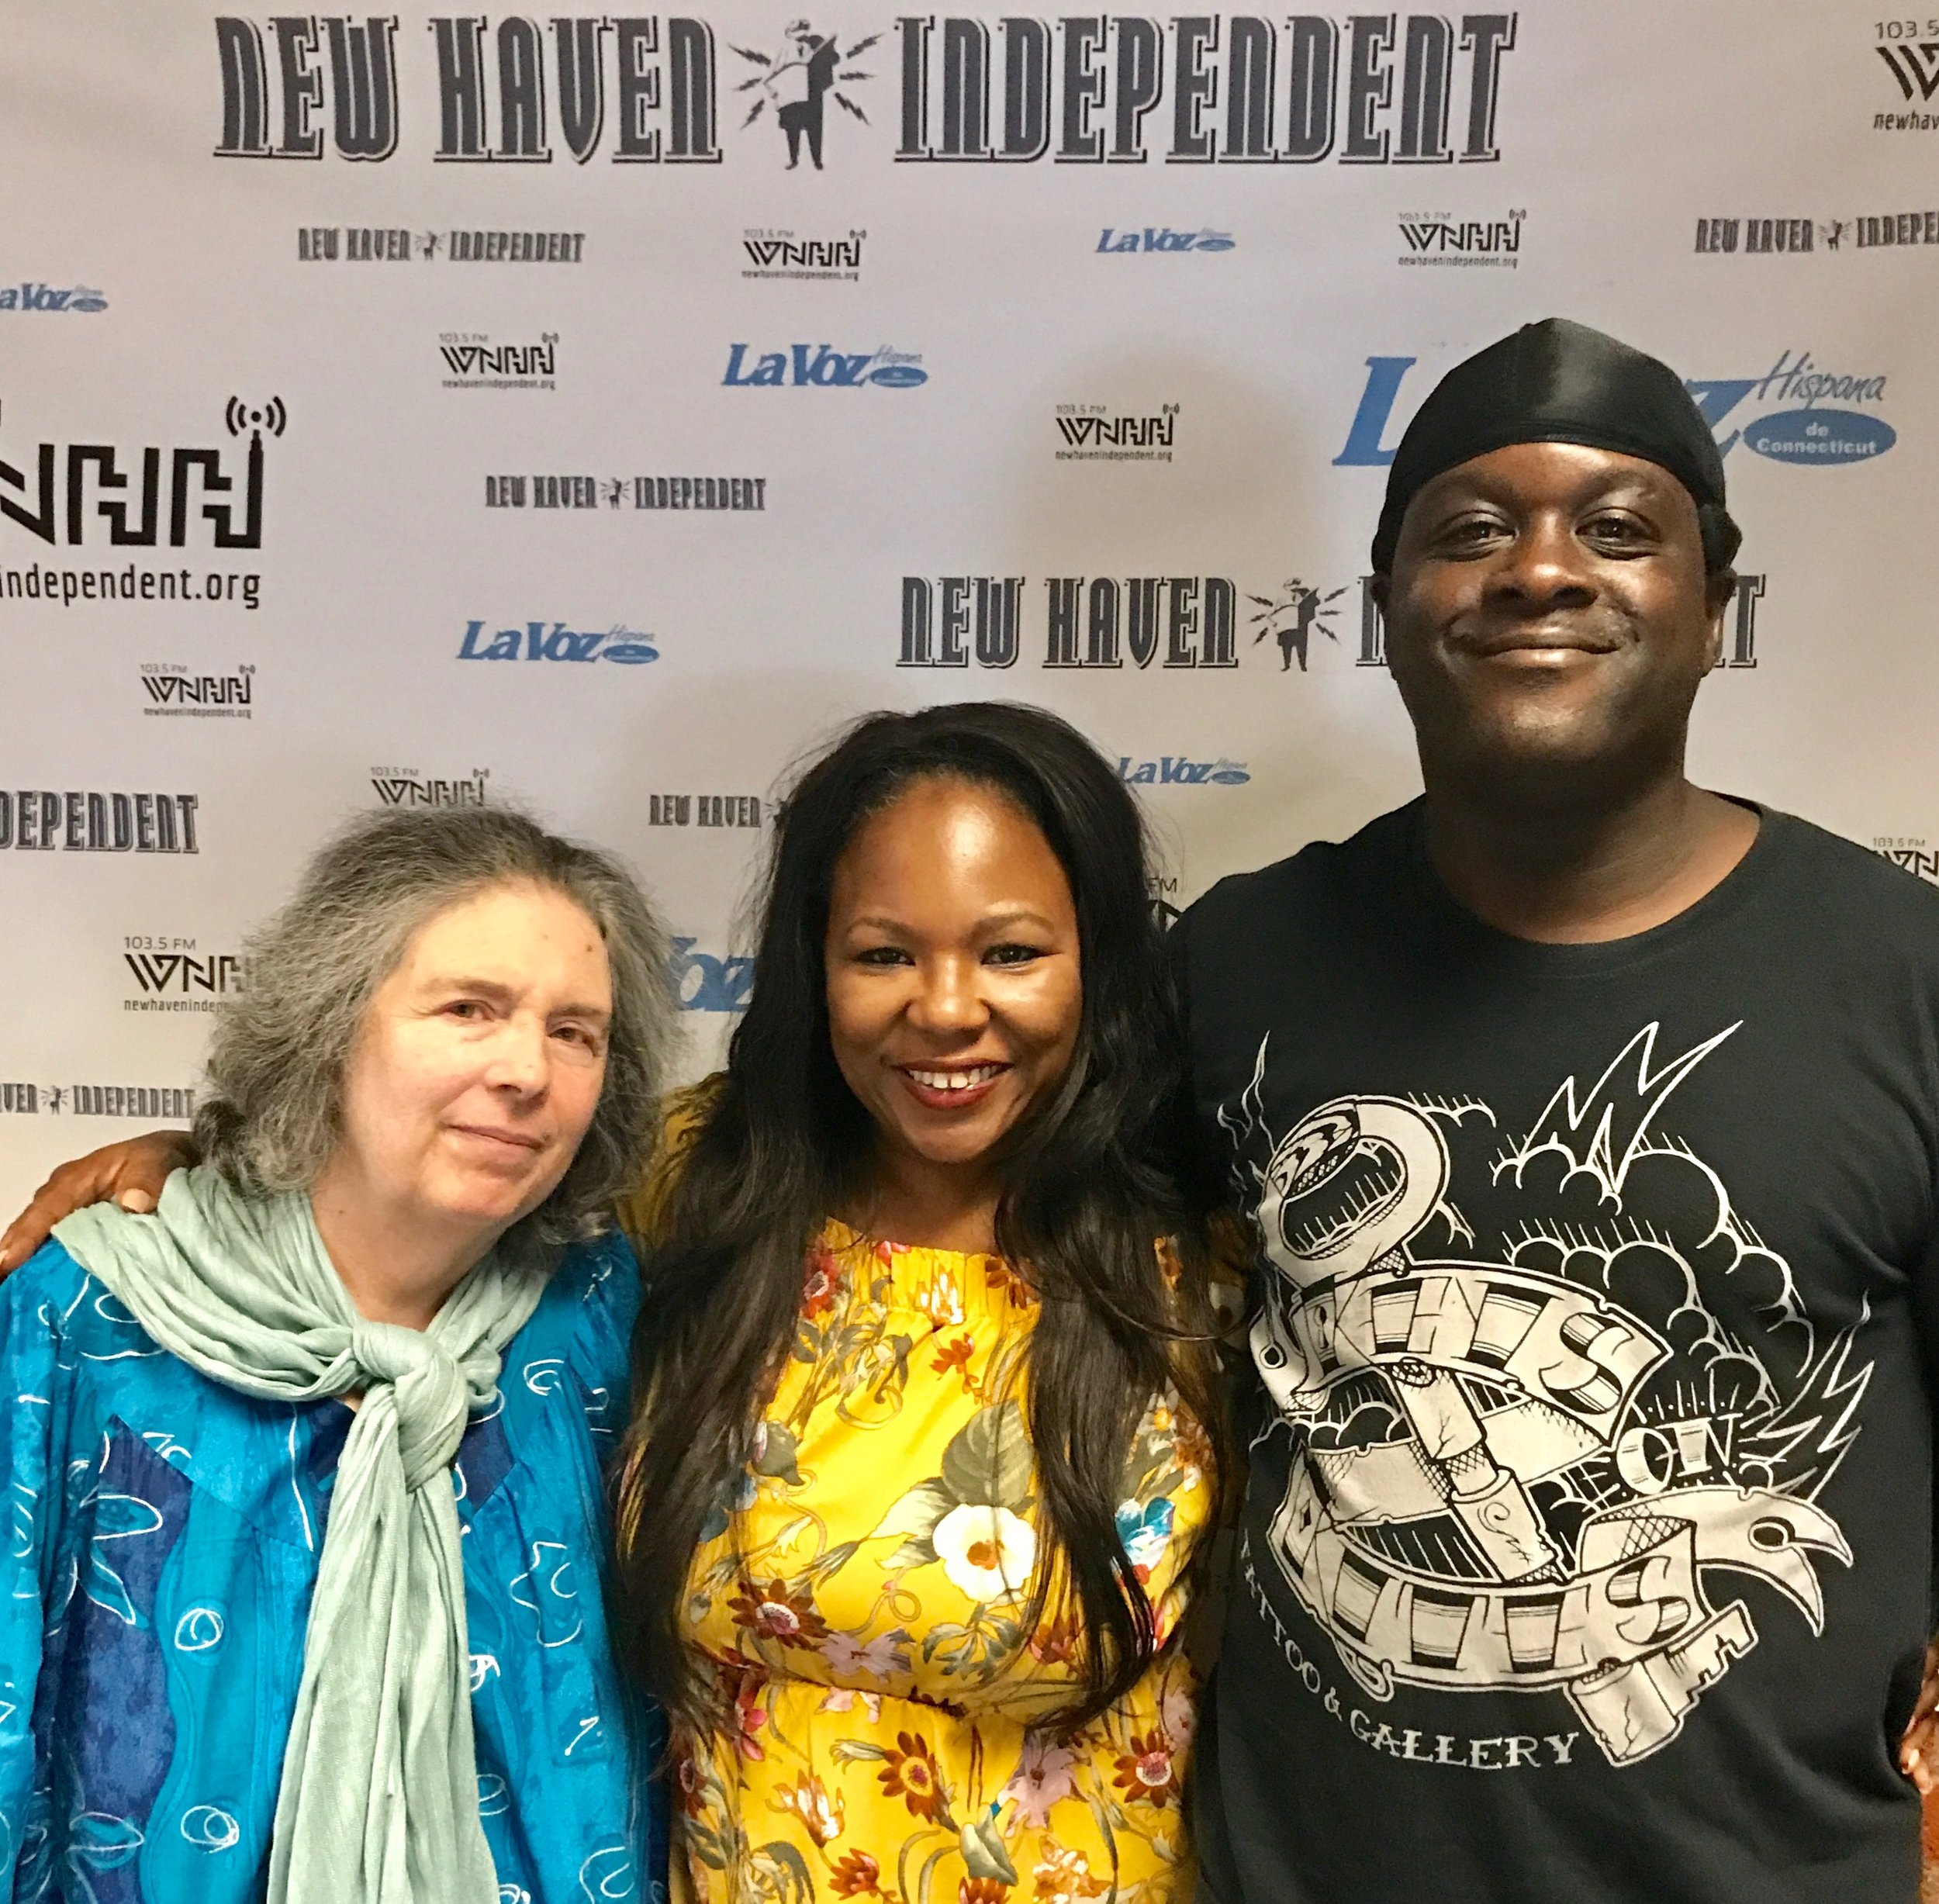 """Host Alisa Bowens-Mercado has an information filled show. She tackles social justice matters with Jahmal Henderson & Joelle Fishman. She talks tennis with Anne Worcester, Tournament Director at the Connecticut Open, and she talks about the upcoming Aug 5, 2017 event """"The Craft Brew Races"""" which is a 5k run/walk followed by a craft beer festival at Edgewood Park. A can't miss Connecticut race and beer event!"""